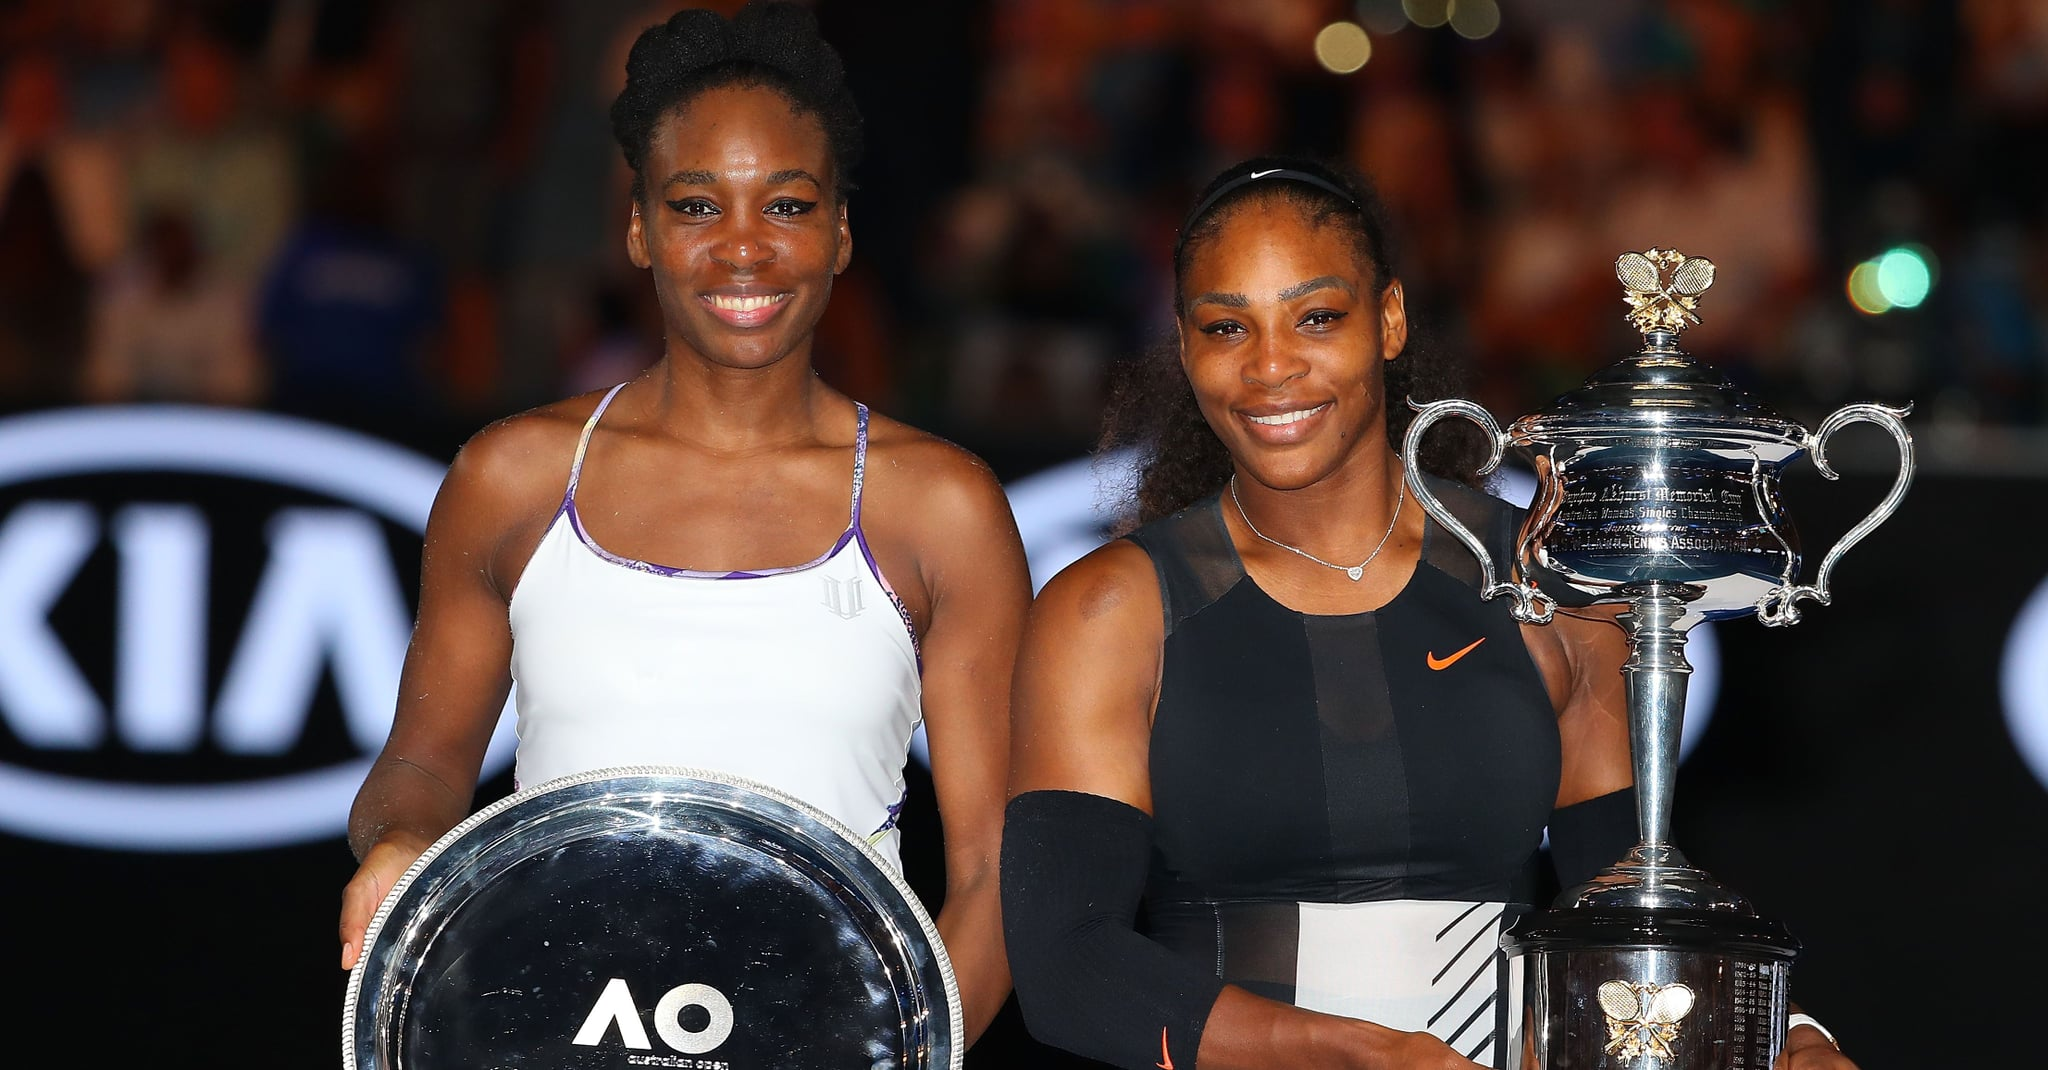 Venus y Serena Williams, en el Open de Australia 2017. (Imagen: Pop Sugar).